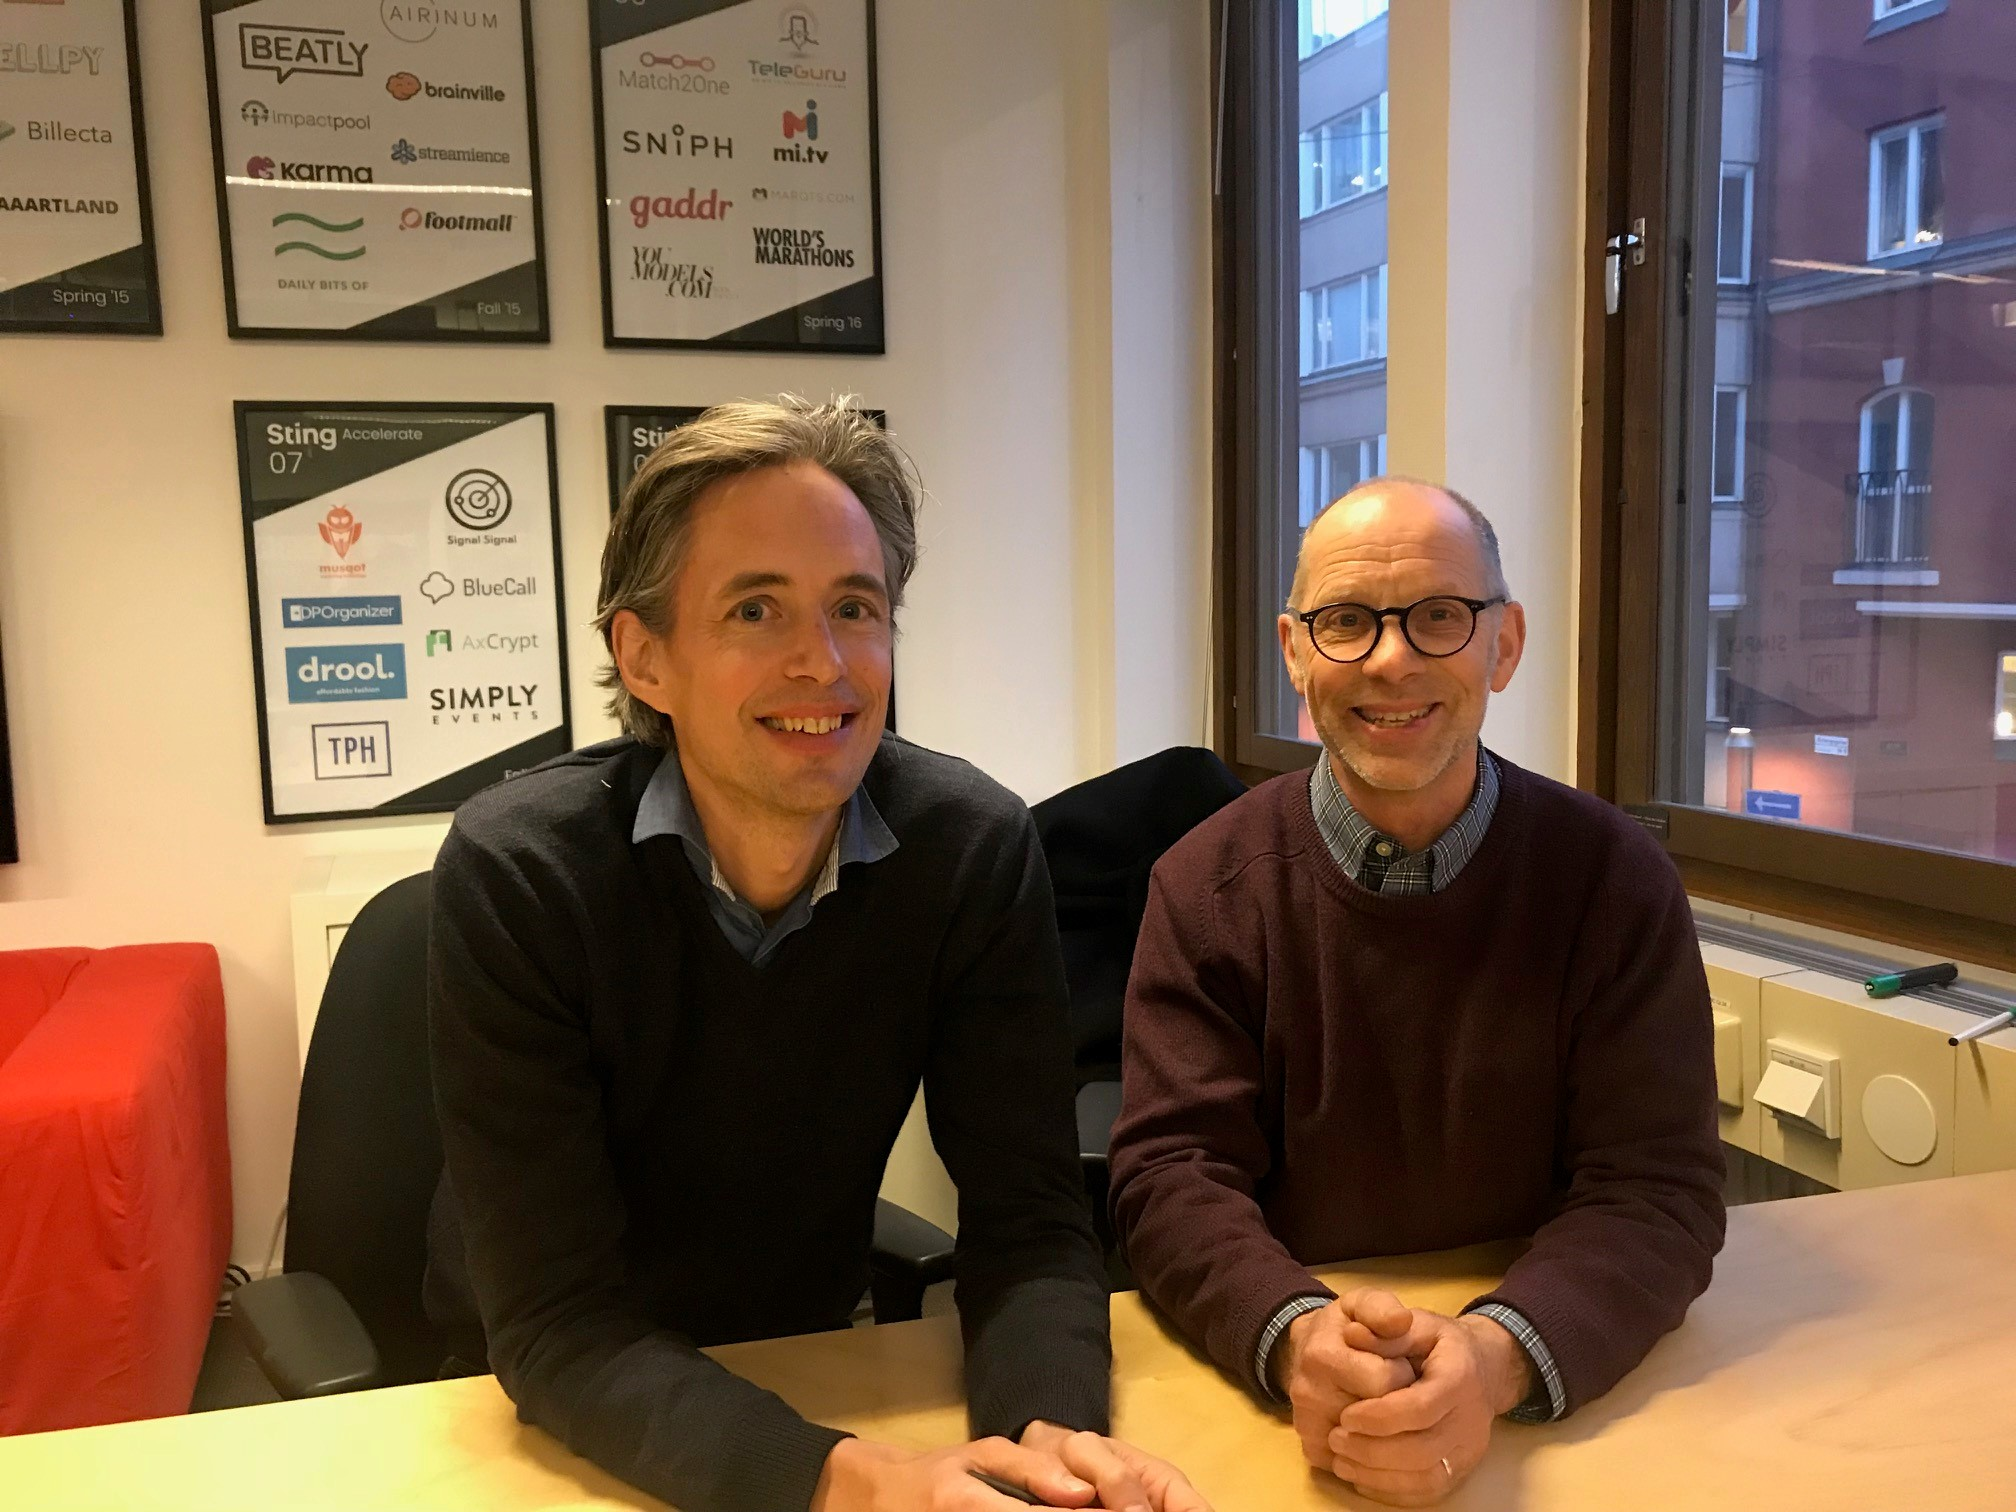 Sting co-founds the new venture fund Luminar Ventures together with successful business angels